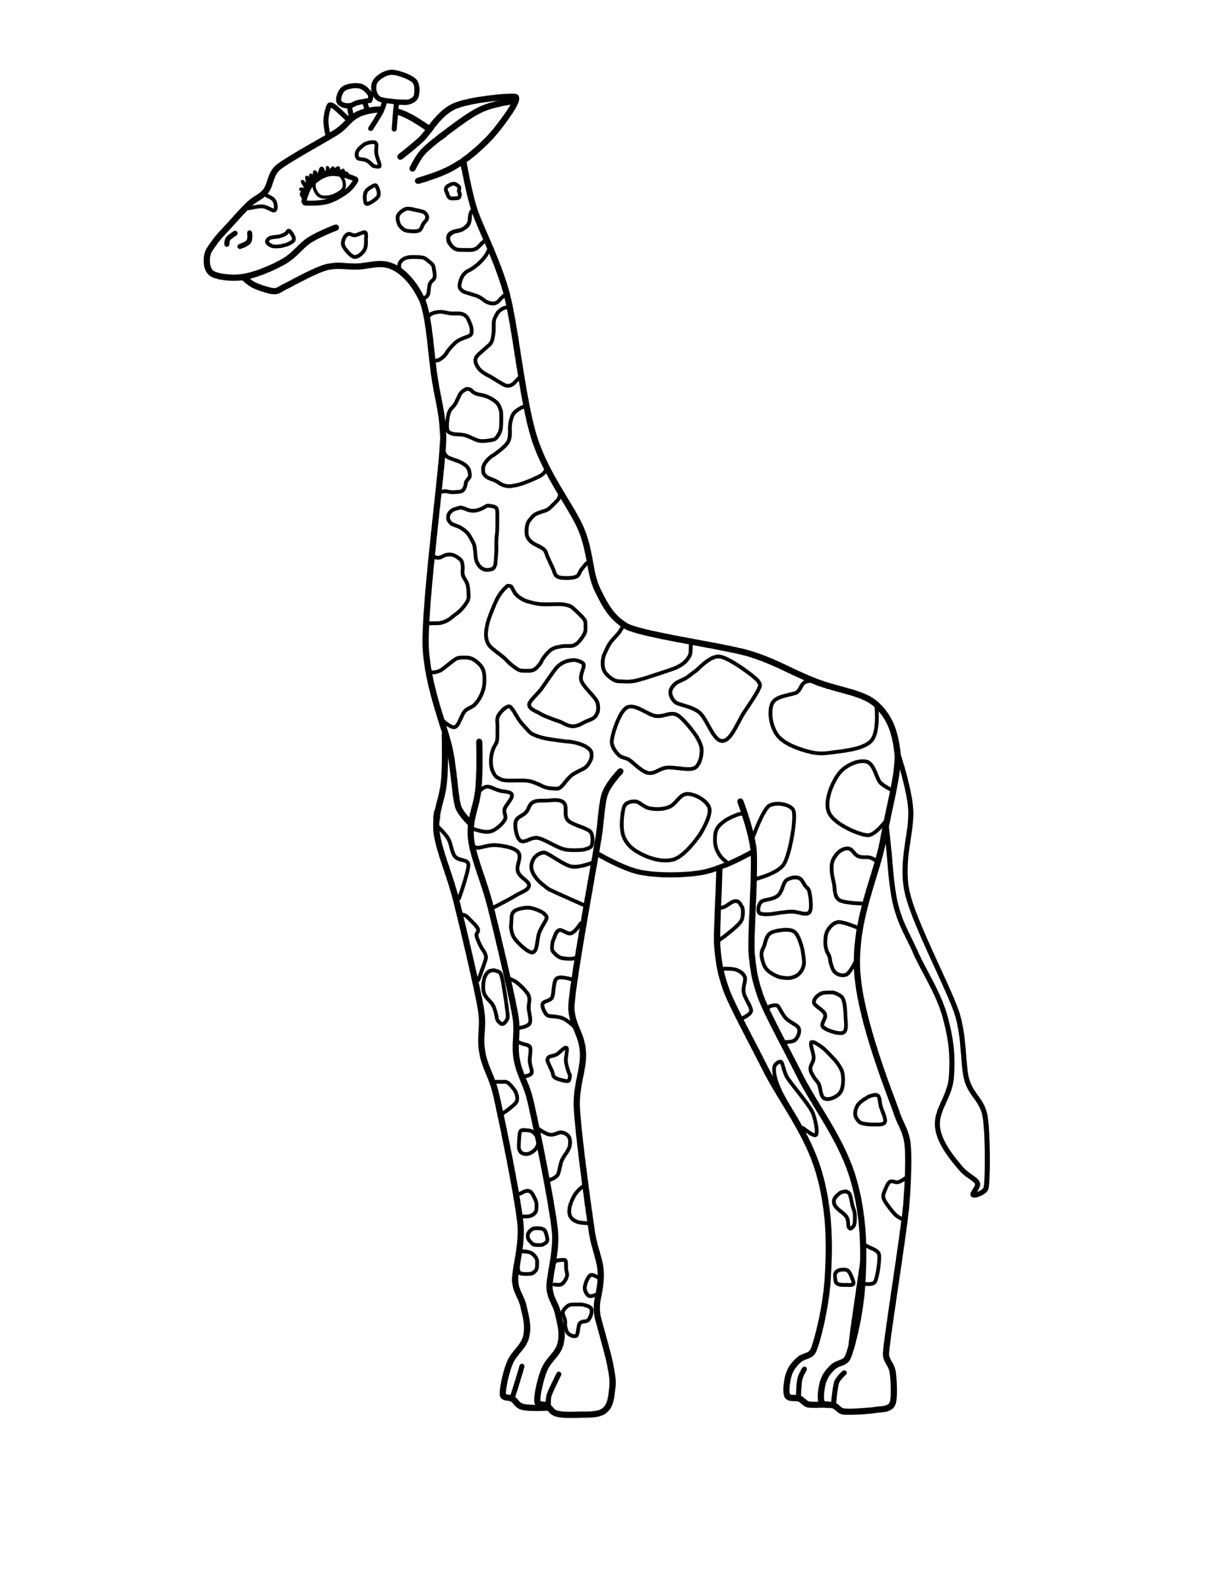 photograph regarding Printable Giraffe Pictures named Absolutely free Printable Giraffe Coloring Internet pages For Children